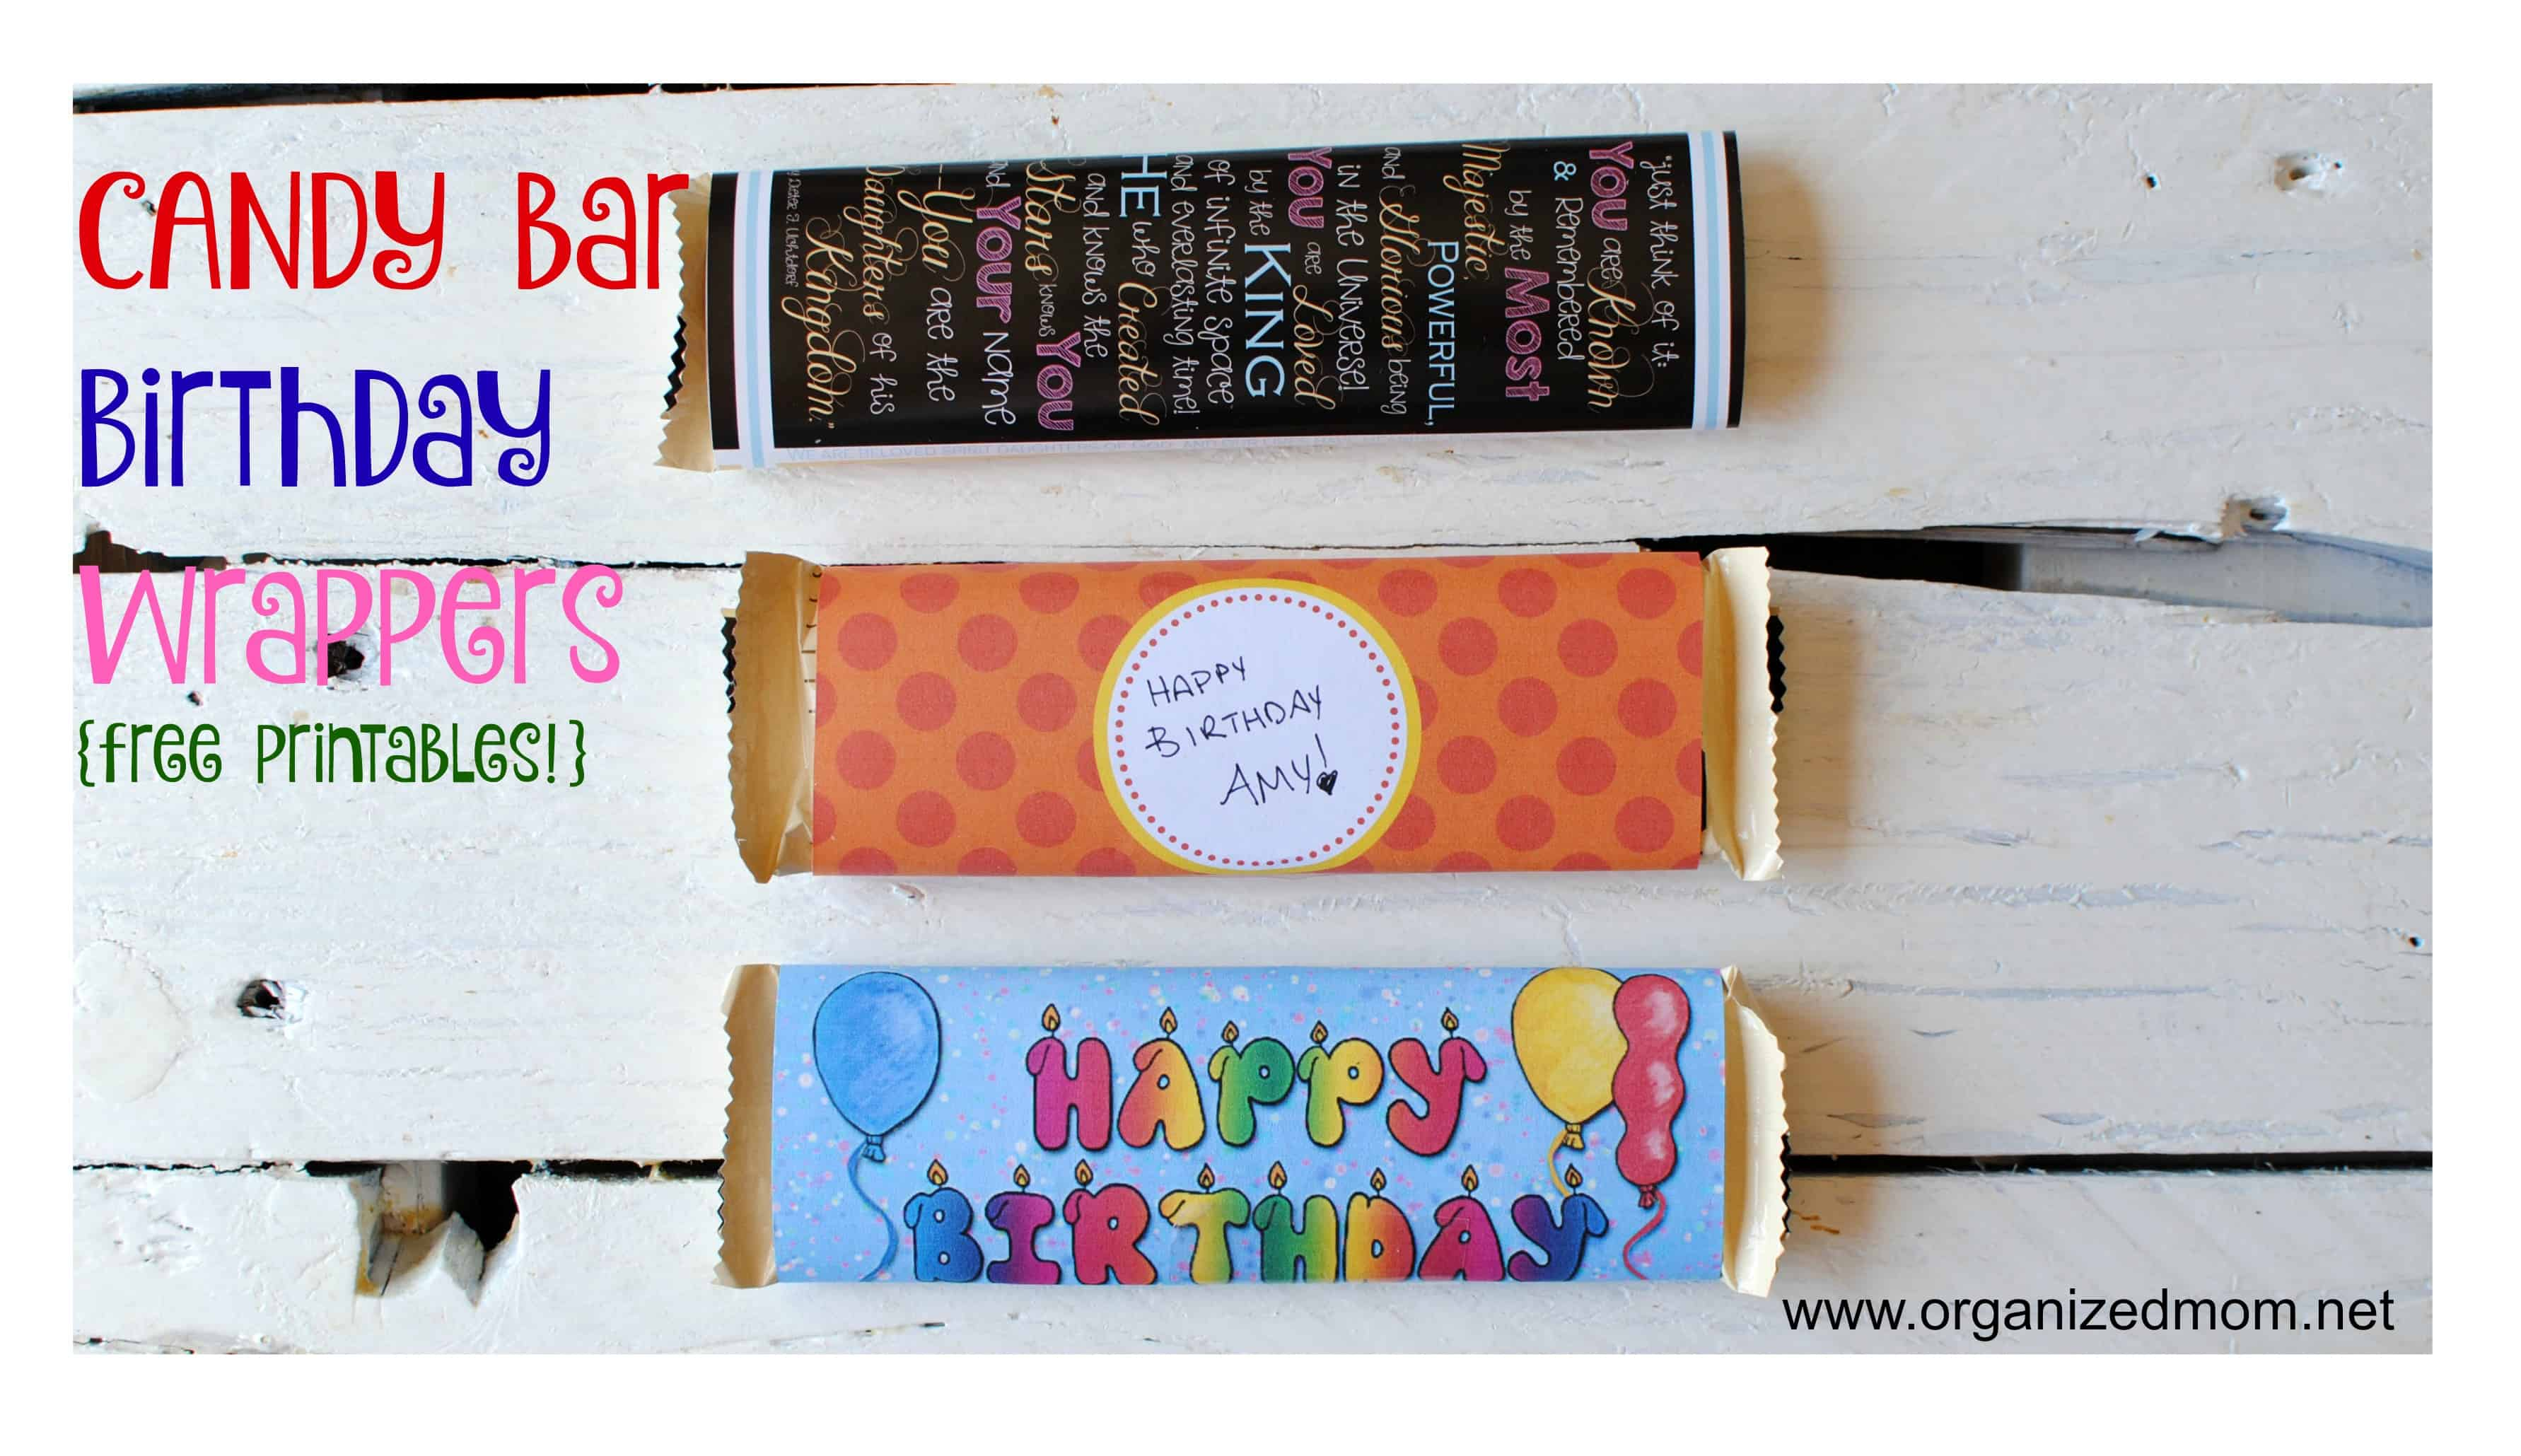 Candy Bar Birthday Wrapper Round Up The Organized Mom